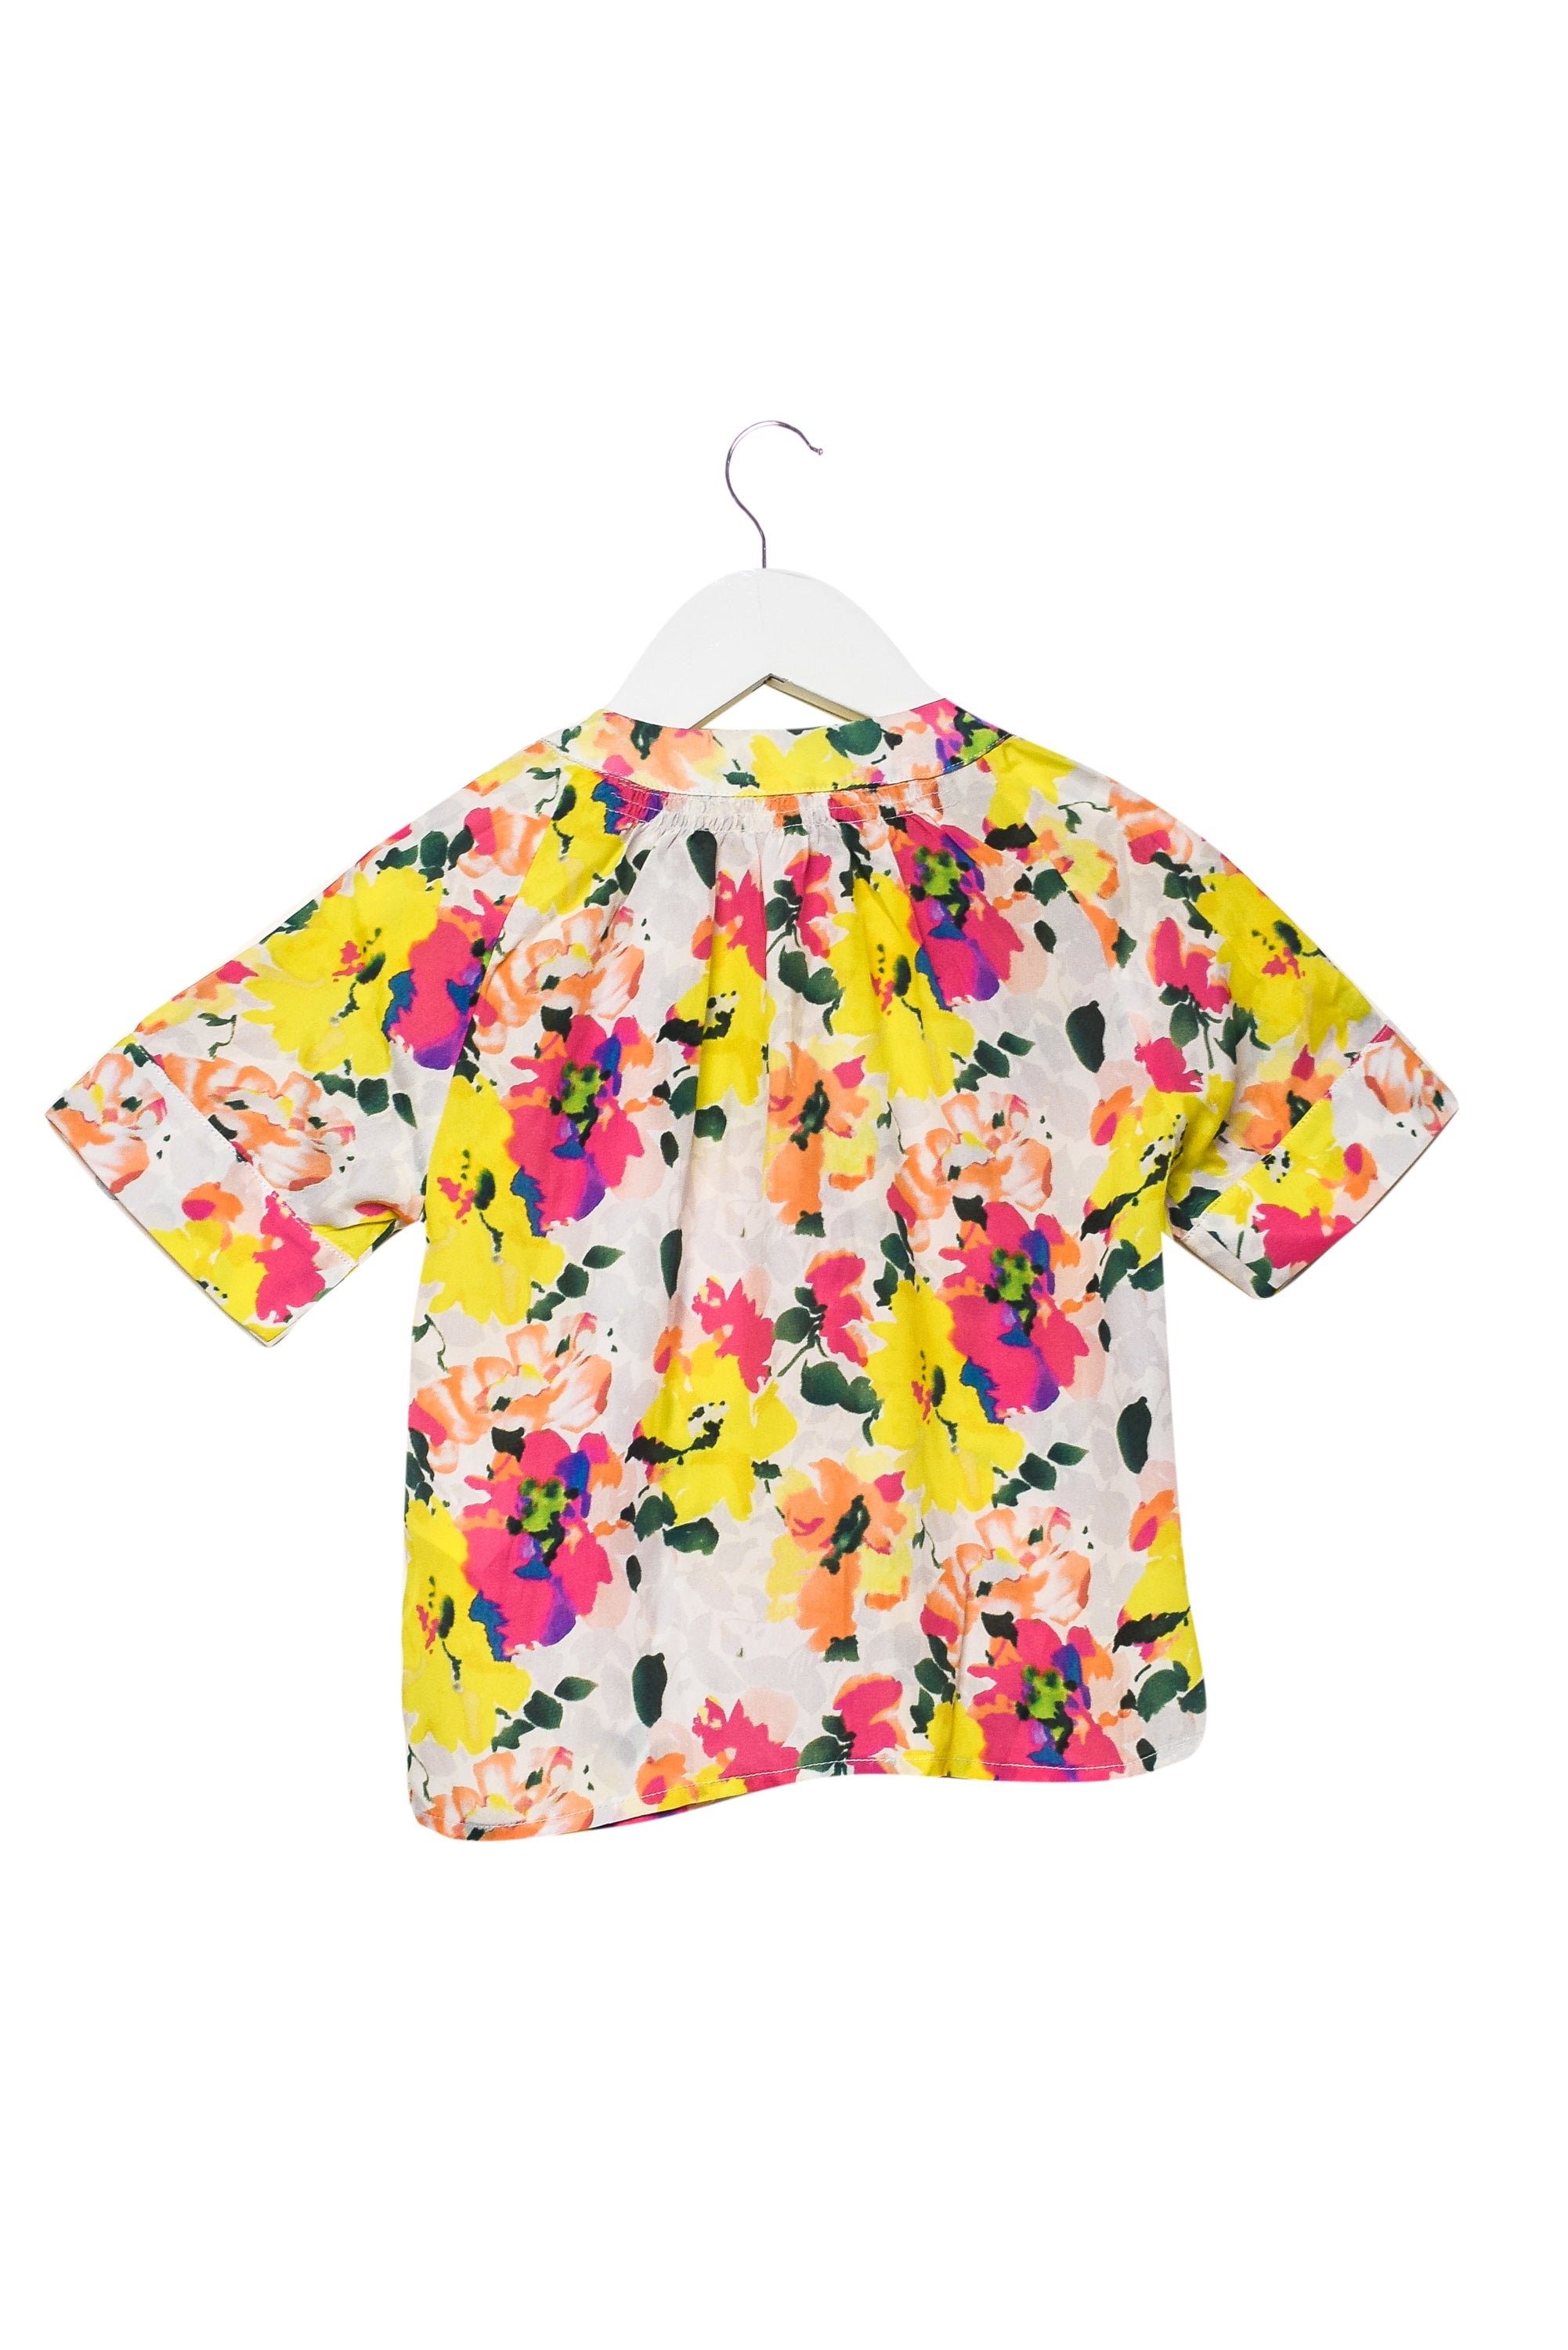 10045929 Marni Kids~Short Sleeve Top4T at Retykle